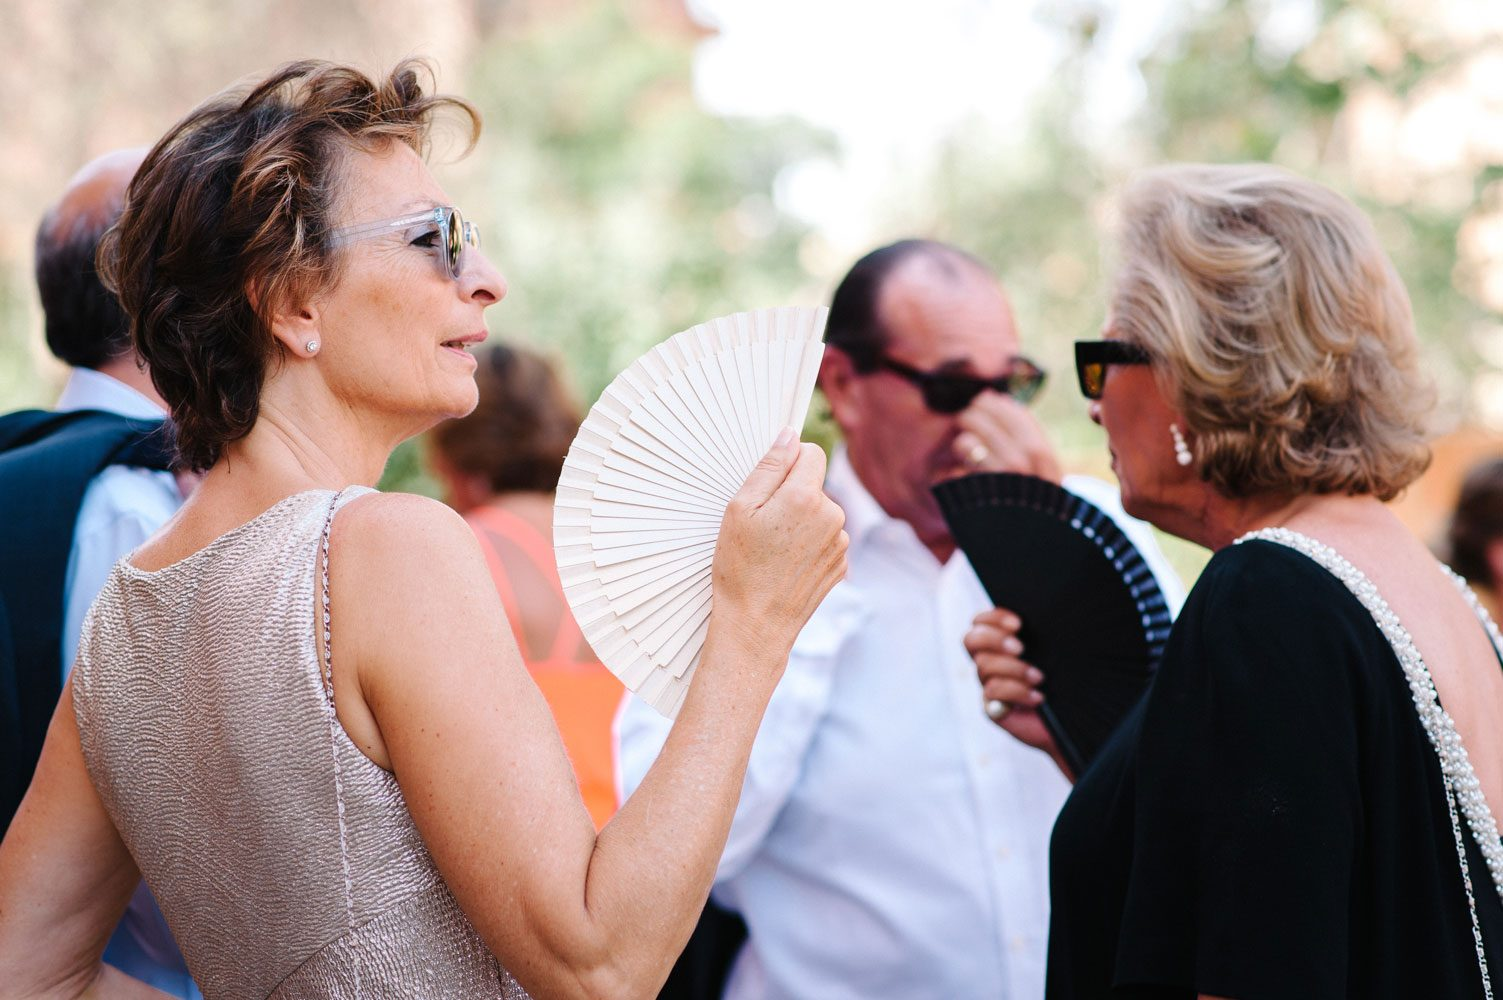 guests use wedding fans to keep cool